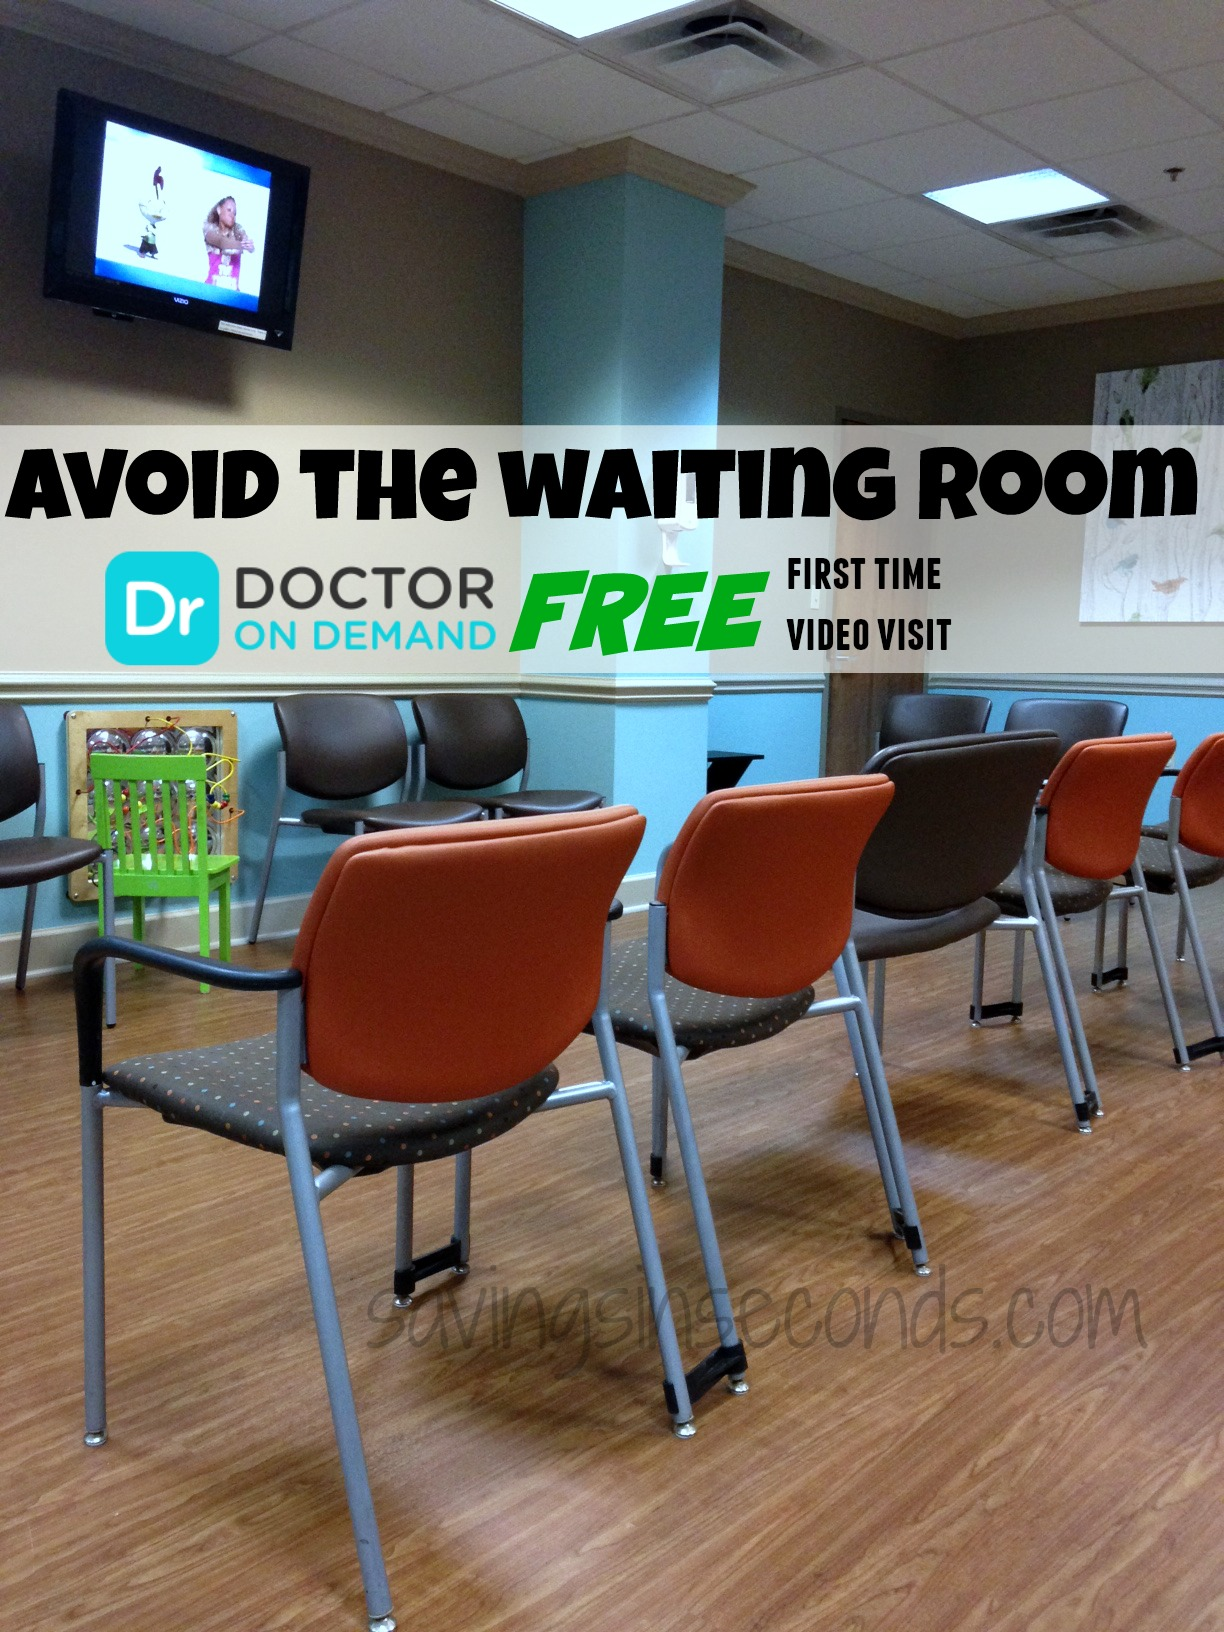 Avoid the waiting room with @DrOnDemand - the first visit is FREE for a limited time! #FeelBetter #ad savingsinseconds.com